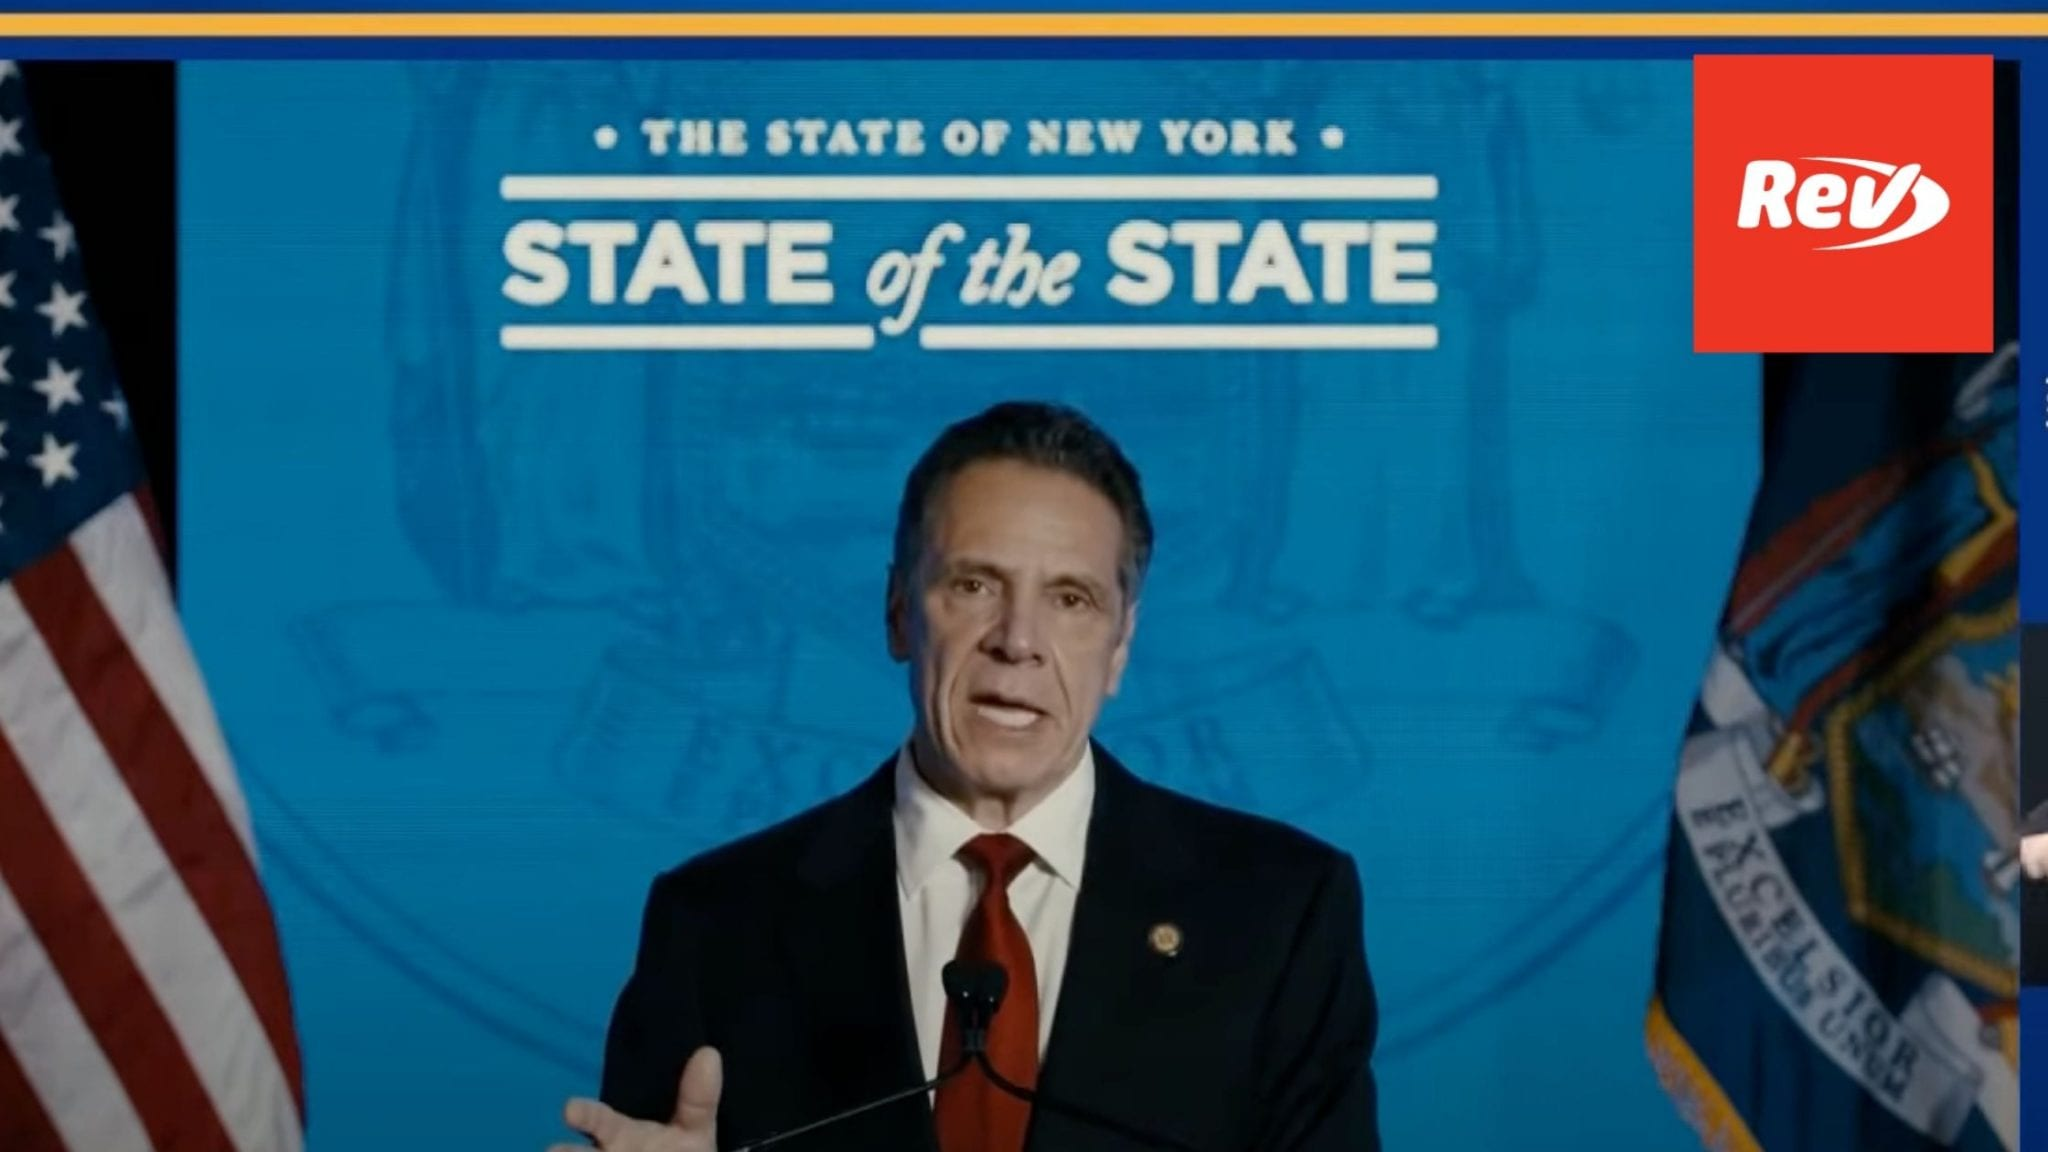 Andrew Cuomo State of the State Address